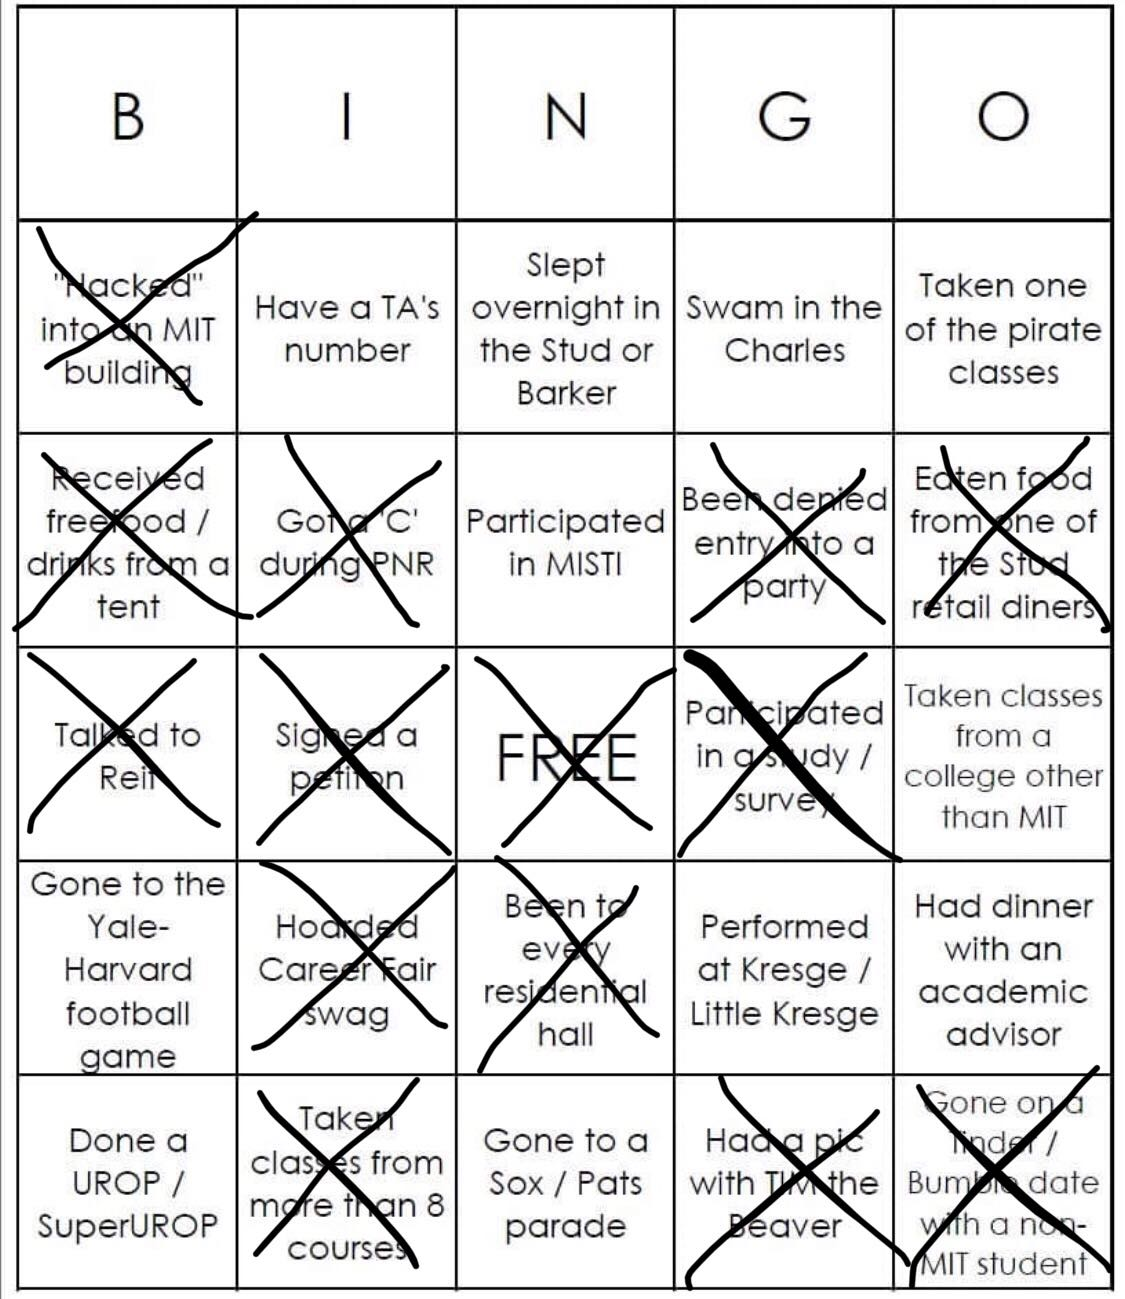 Sabrina's white bingo. She did not get bingo.